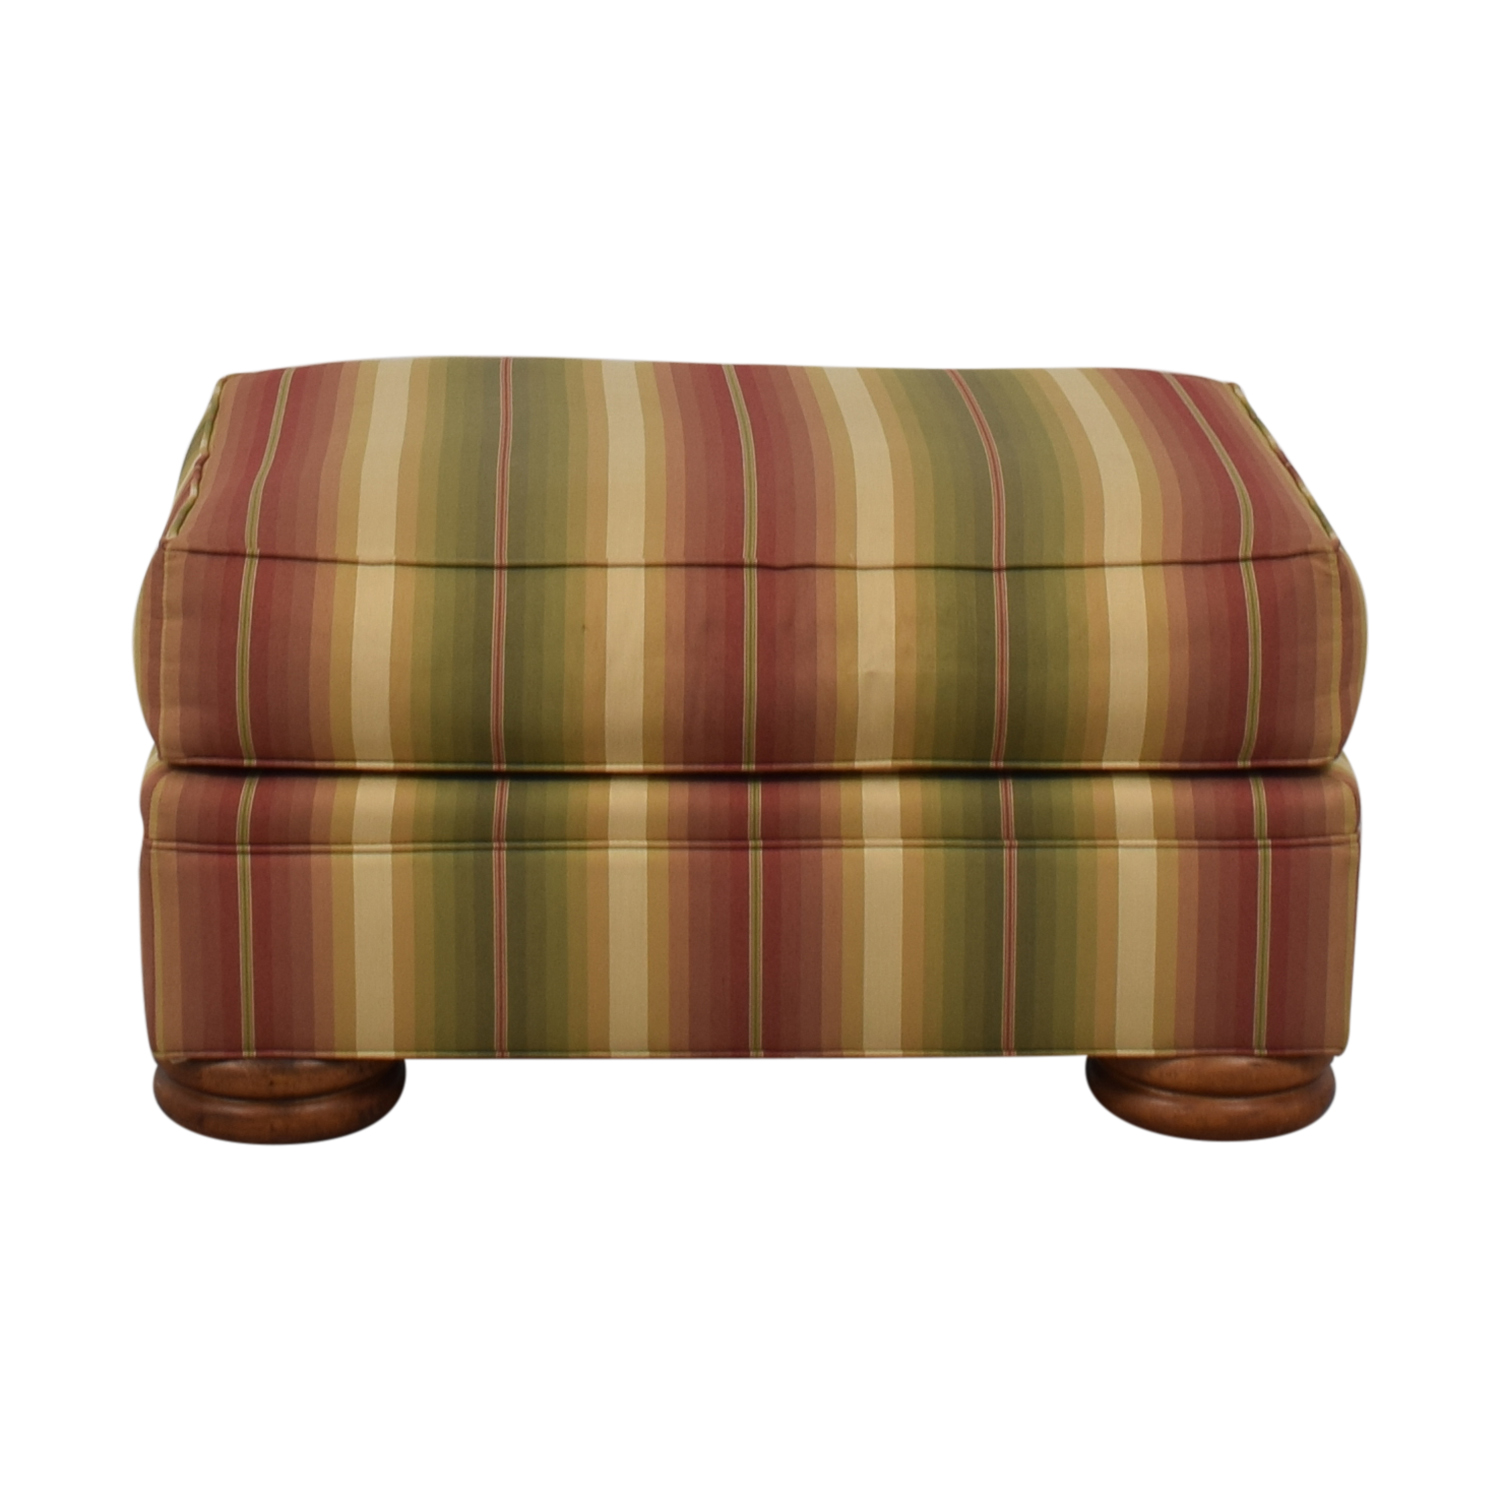 buy Thomasville Striped Ottoman Thomasville Chairs